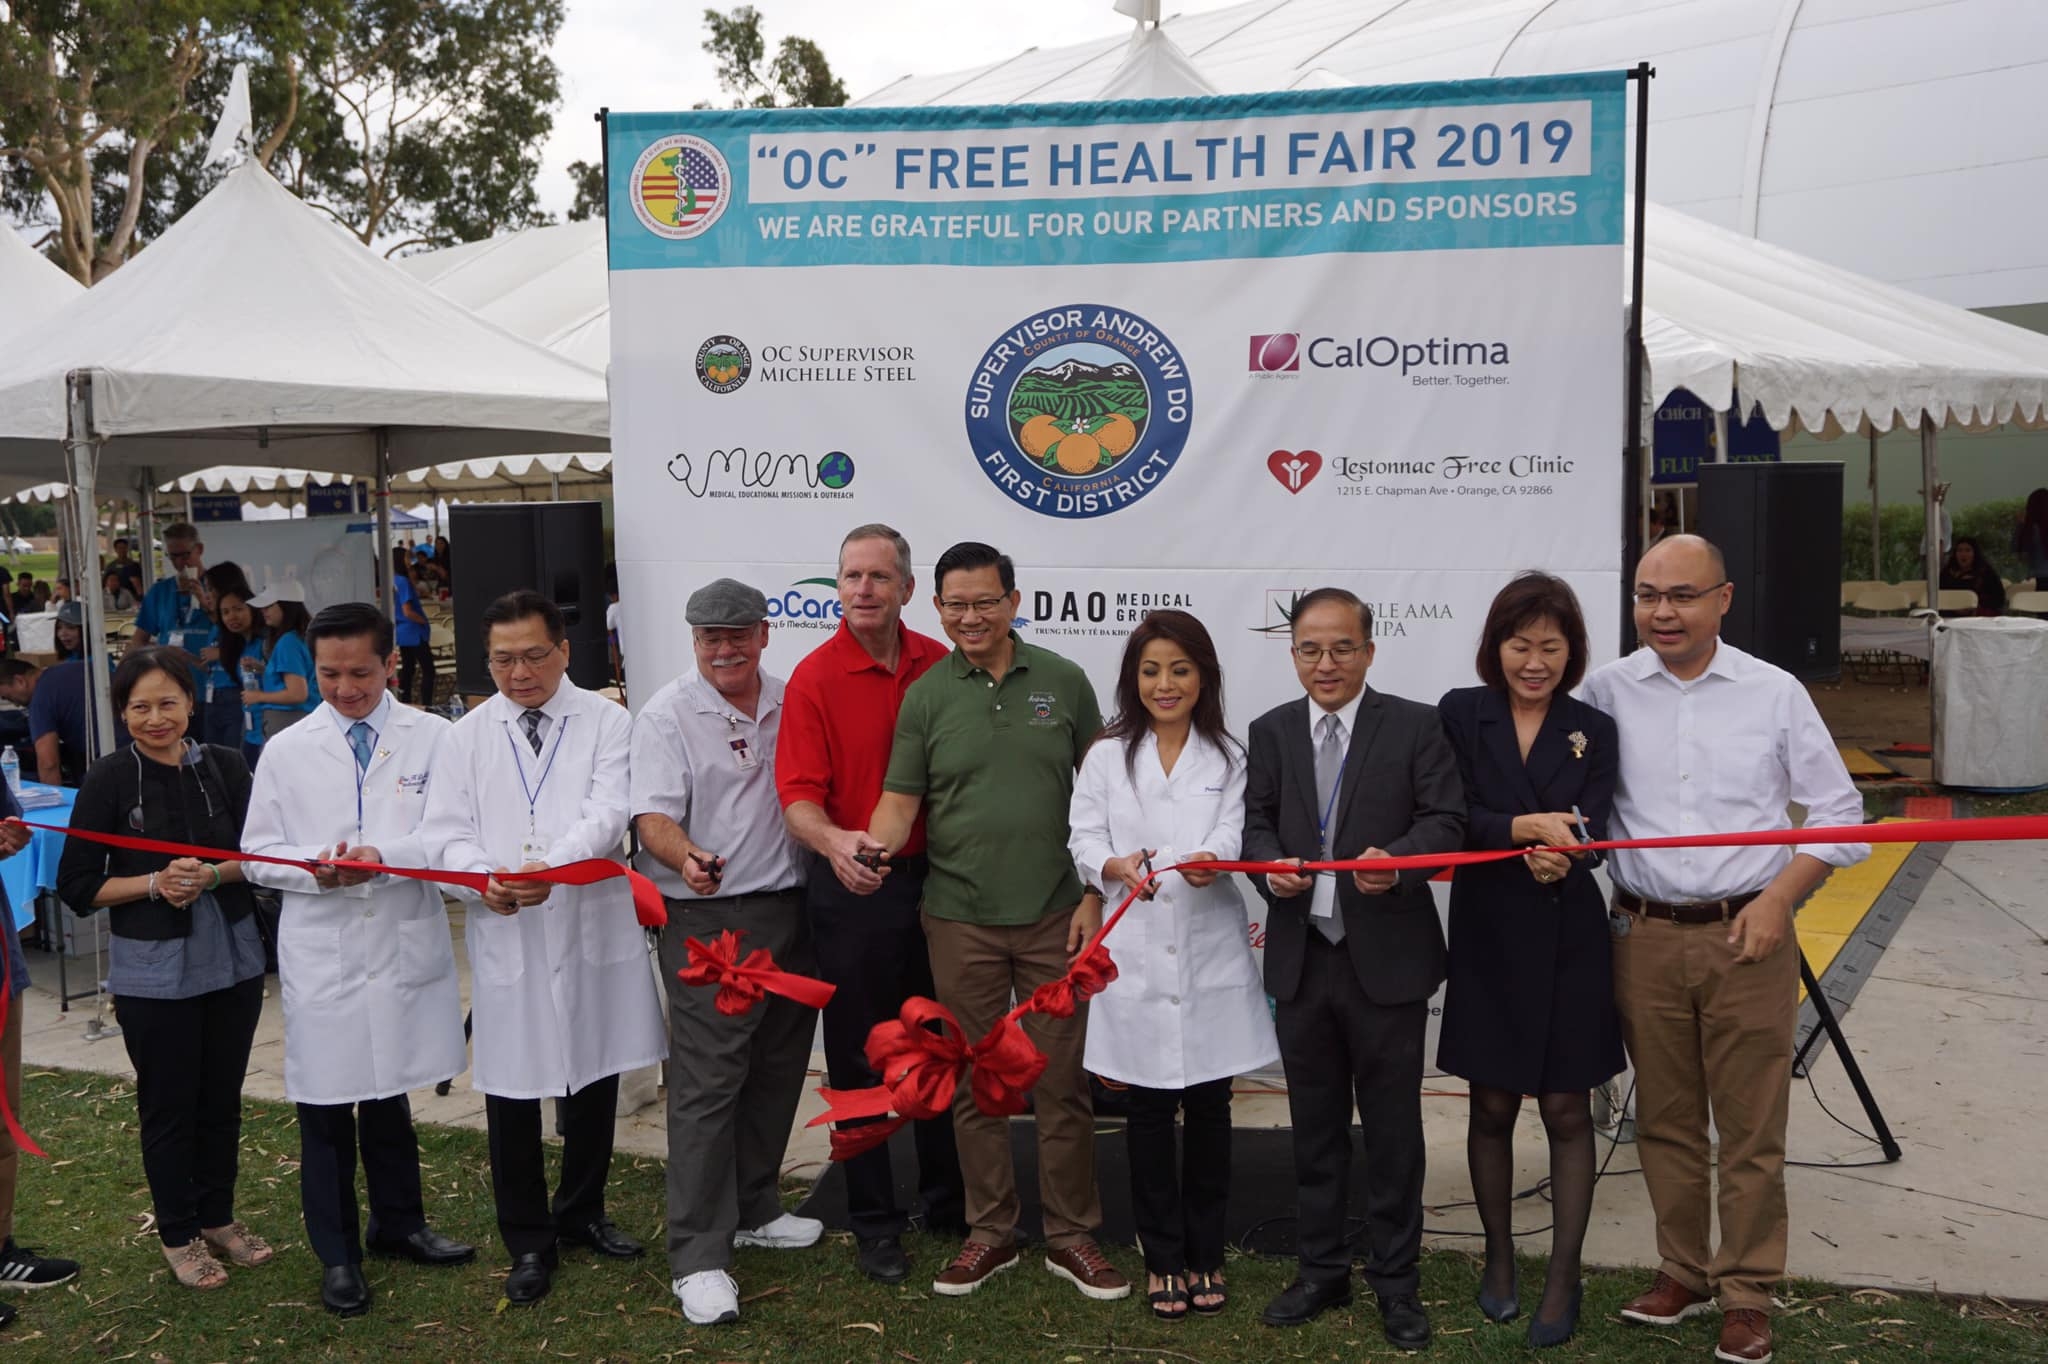 Health Care: More than 2,500 Medical Treatments Were Provided at Orange County's Largest Free Health Fair